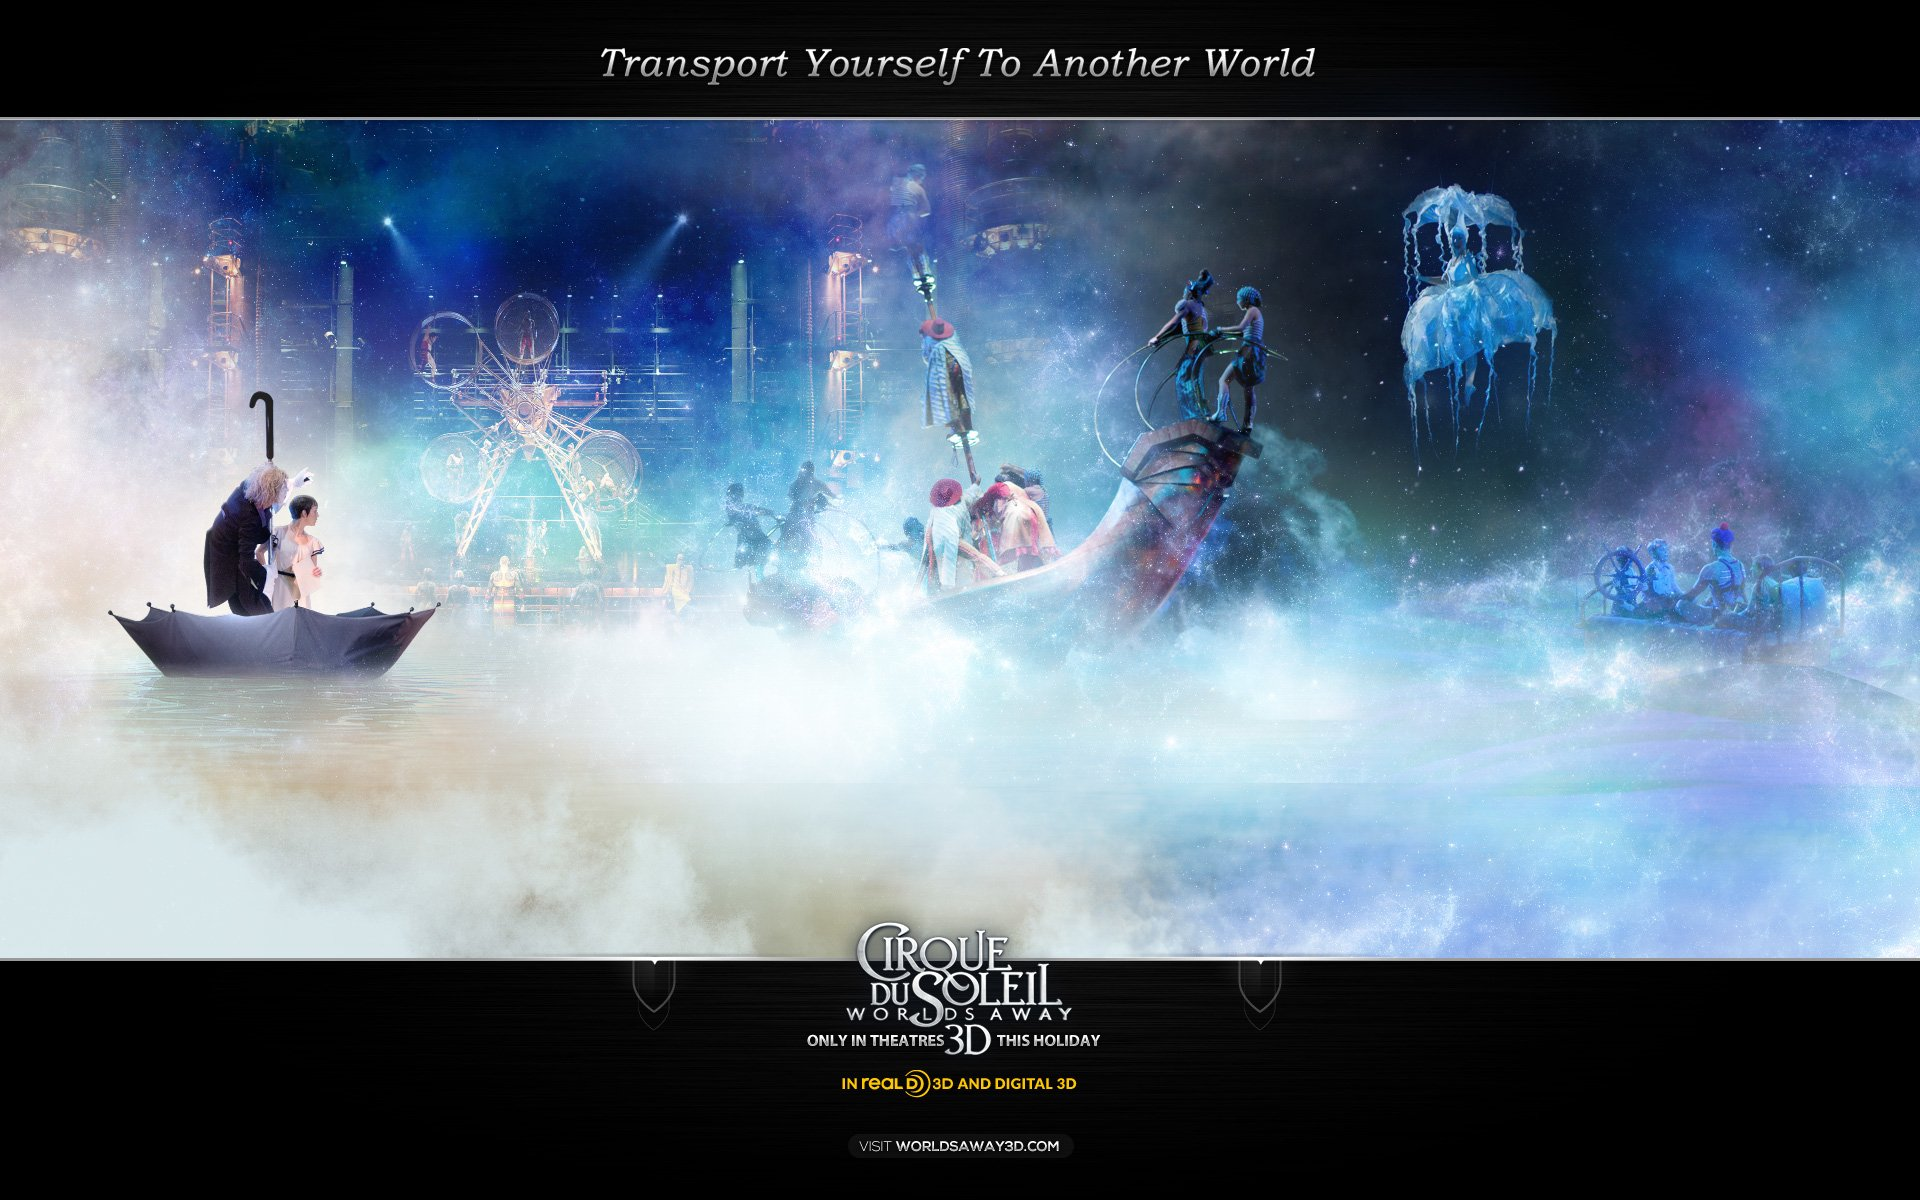 Transport Yourself To Another World HD Wallpaper Background 1920x1200